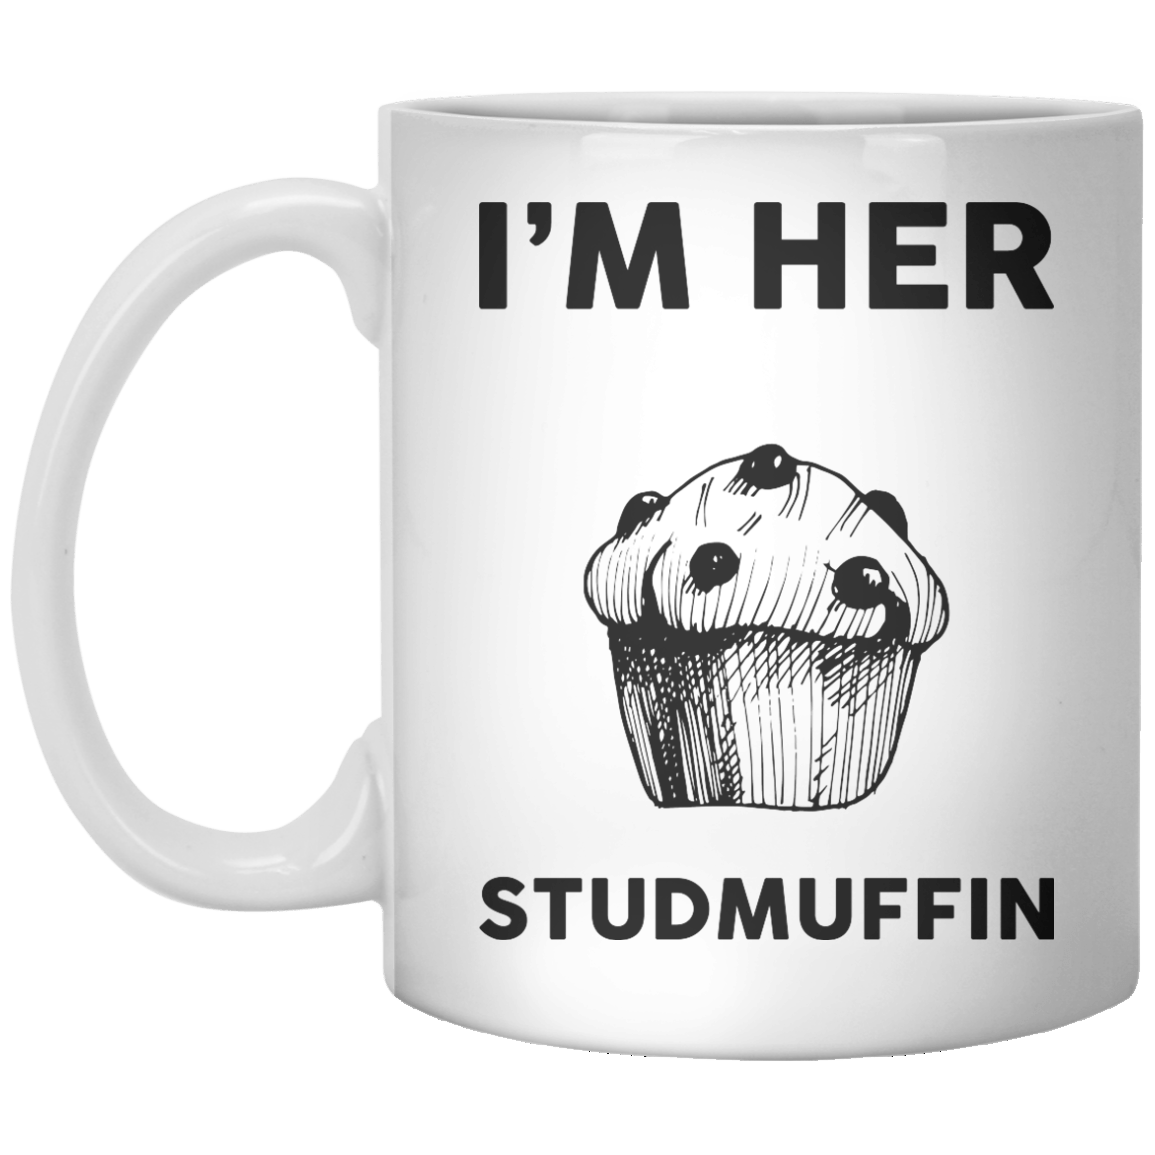 I'm Her Studmuffin - Shirtoopia